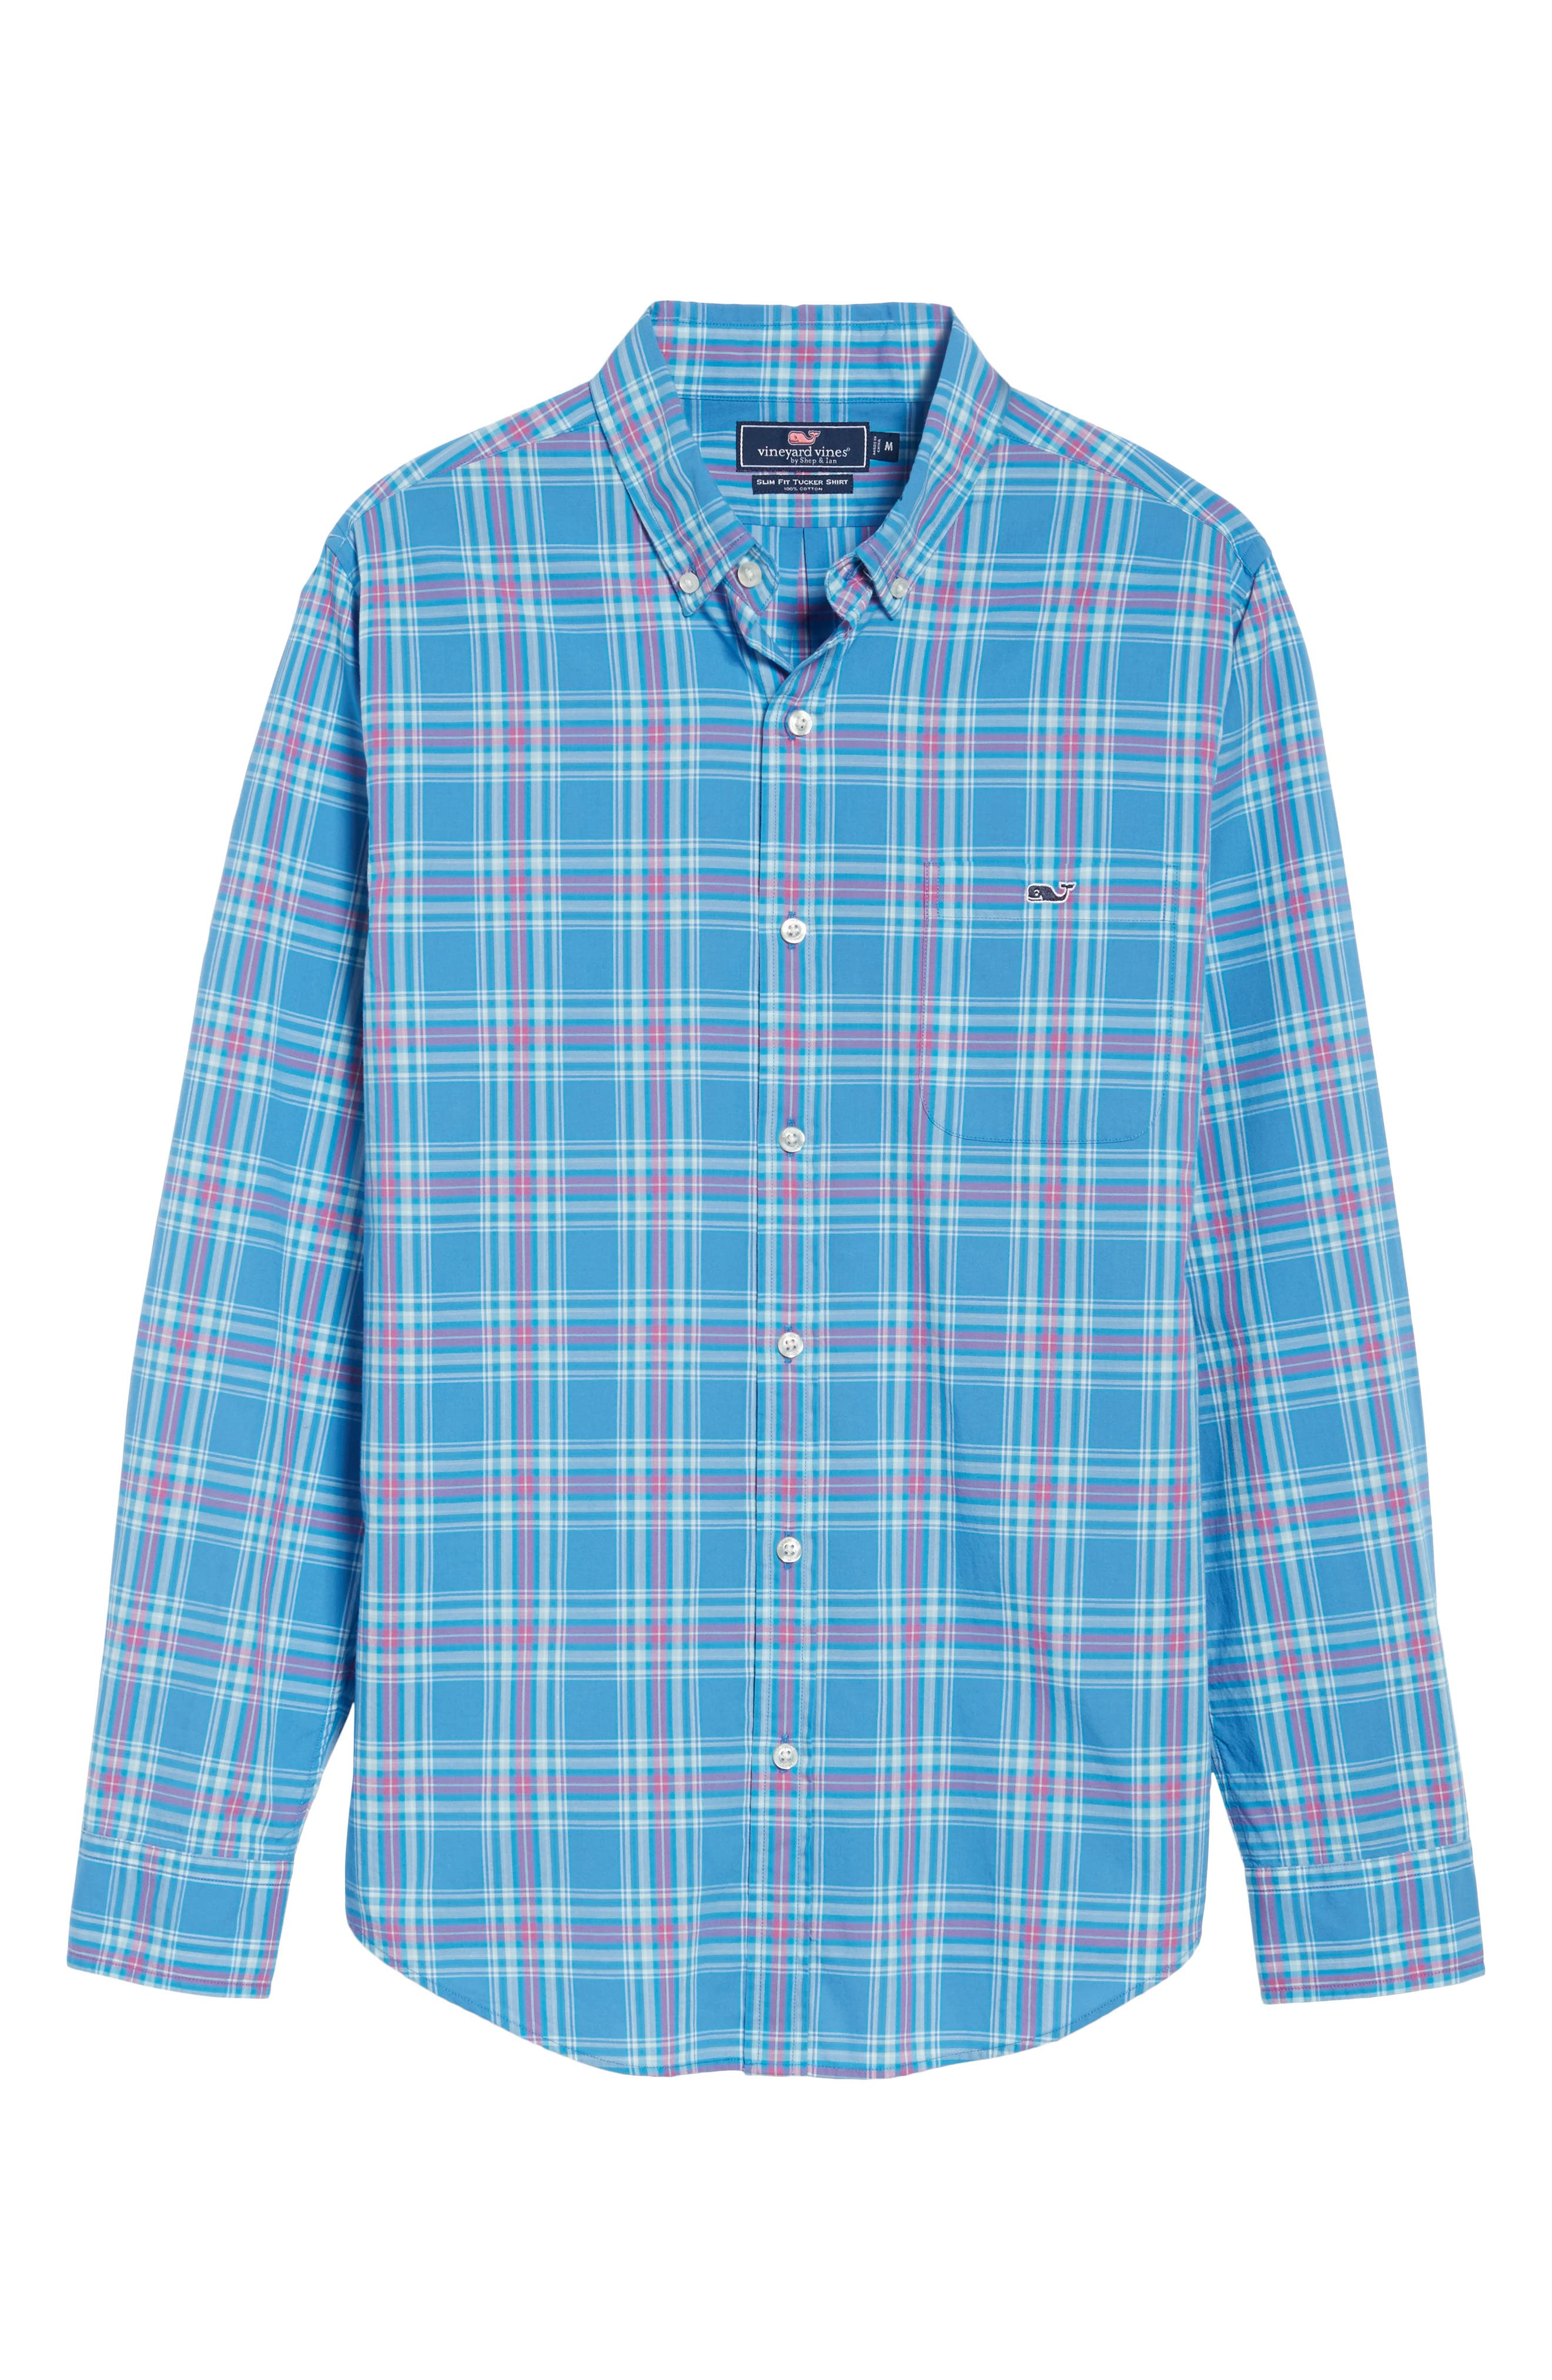 Pelon Plaid Tucker Slim Fit Sport Shirt,                             Alternate thumbnail 6, color,                             496